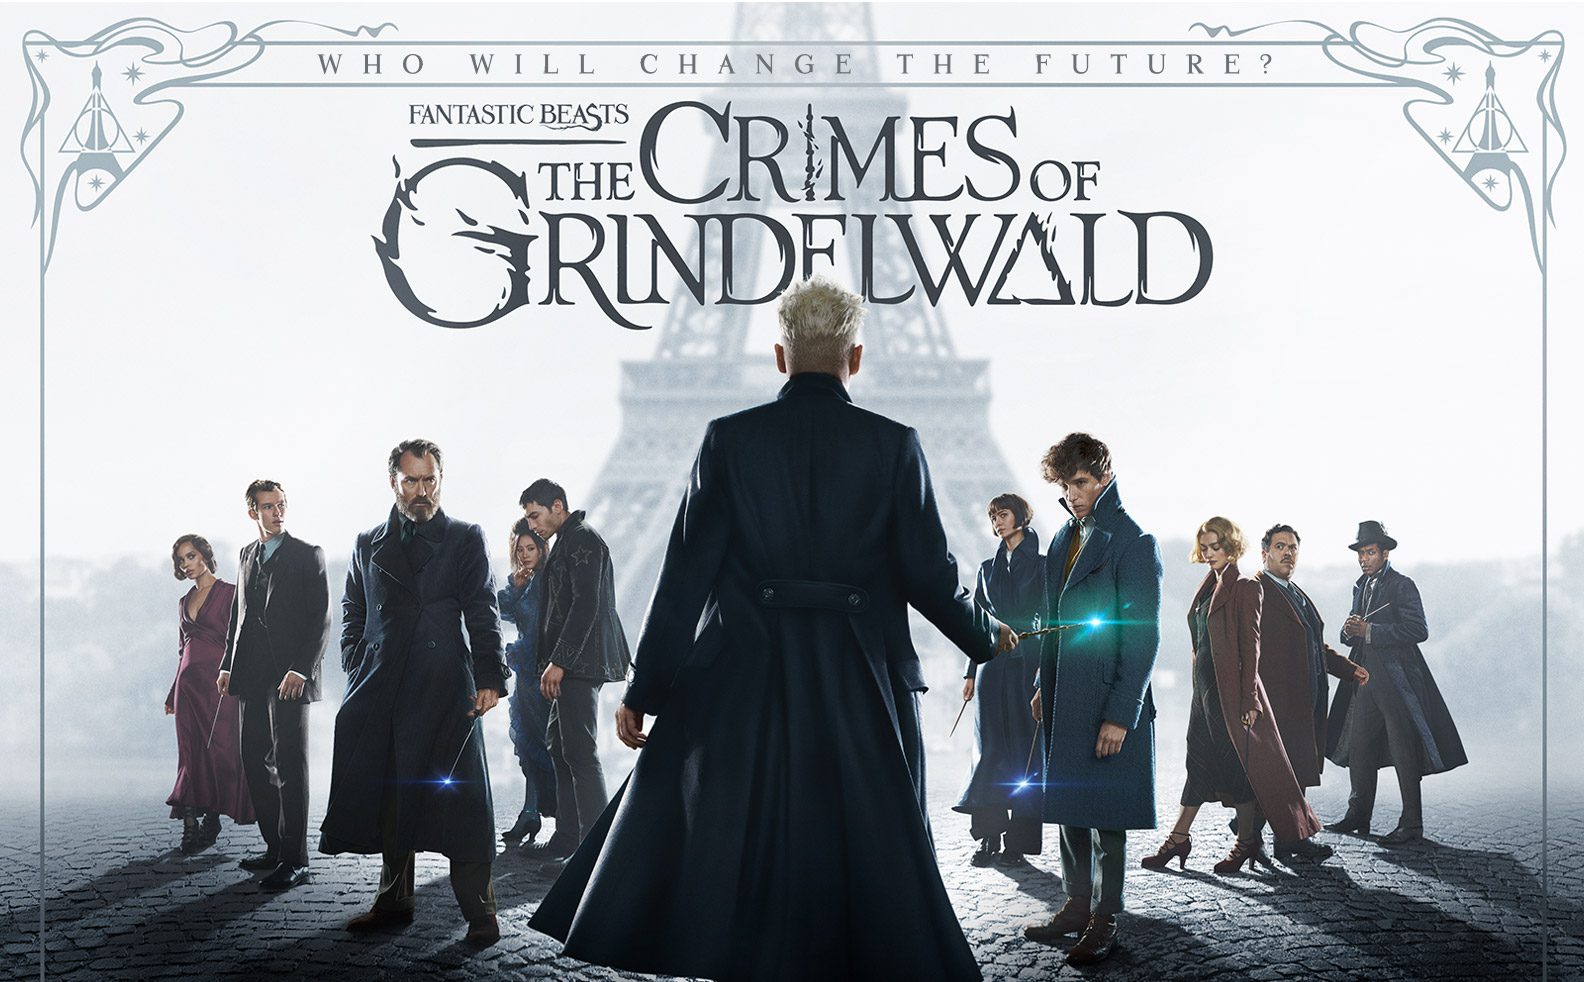 Fantastic Beasts: The Crimes of Grindelwald | A Magical Film Deserves a Magical IMAX Movie Experience